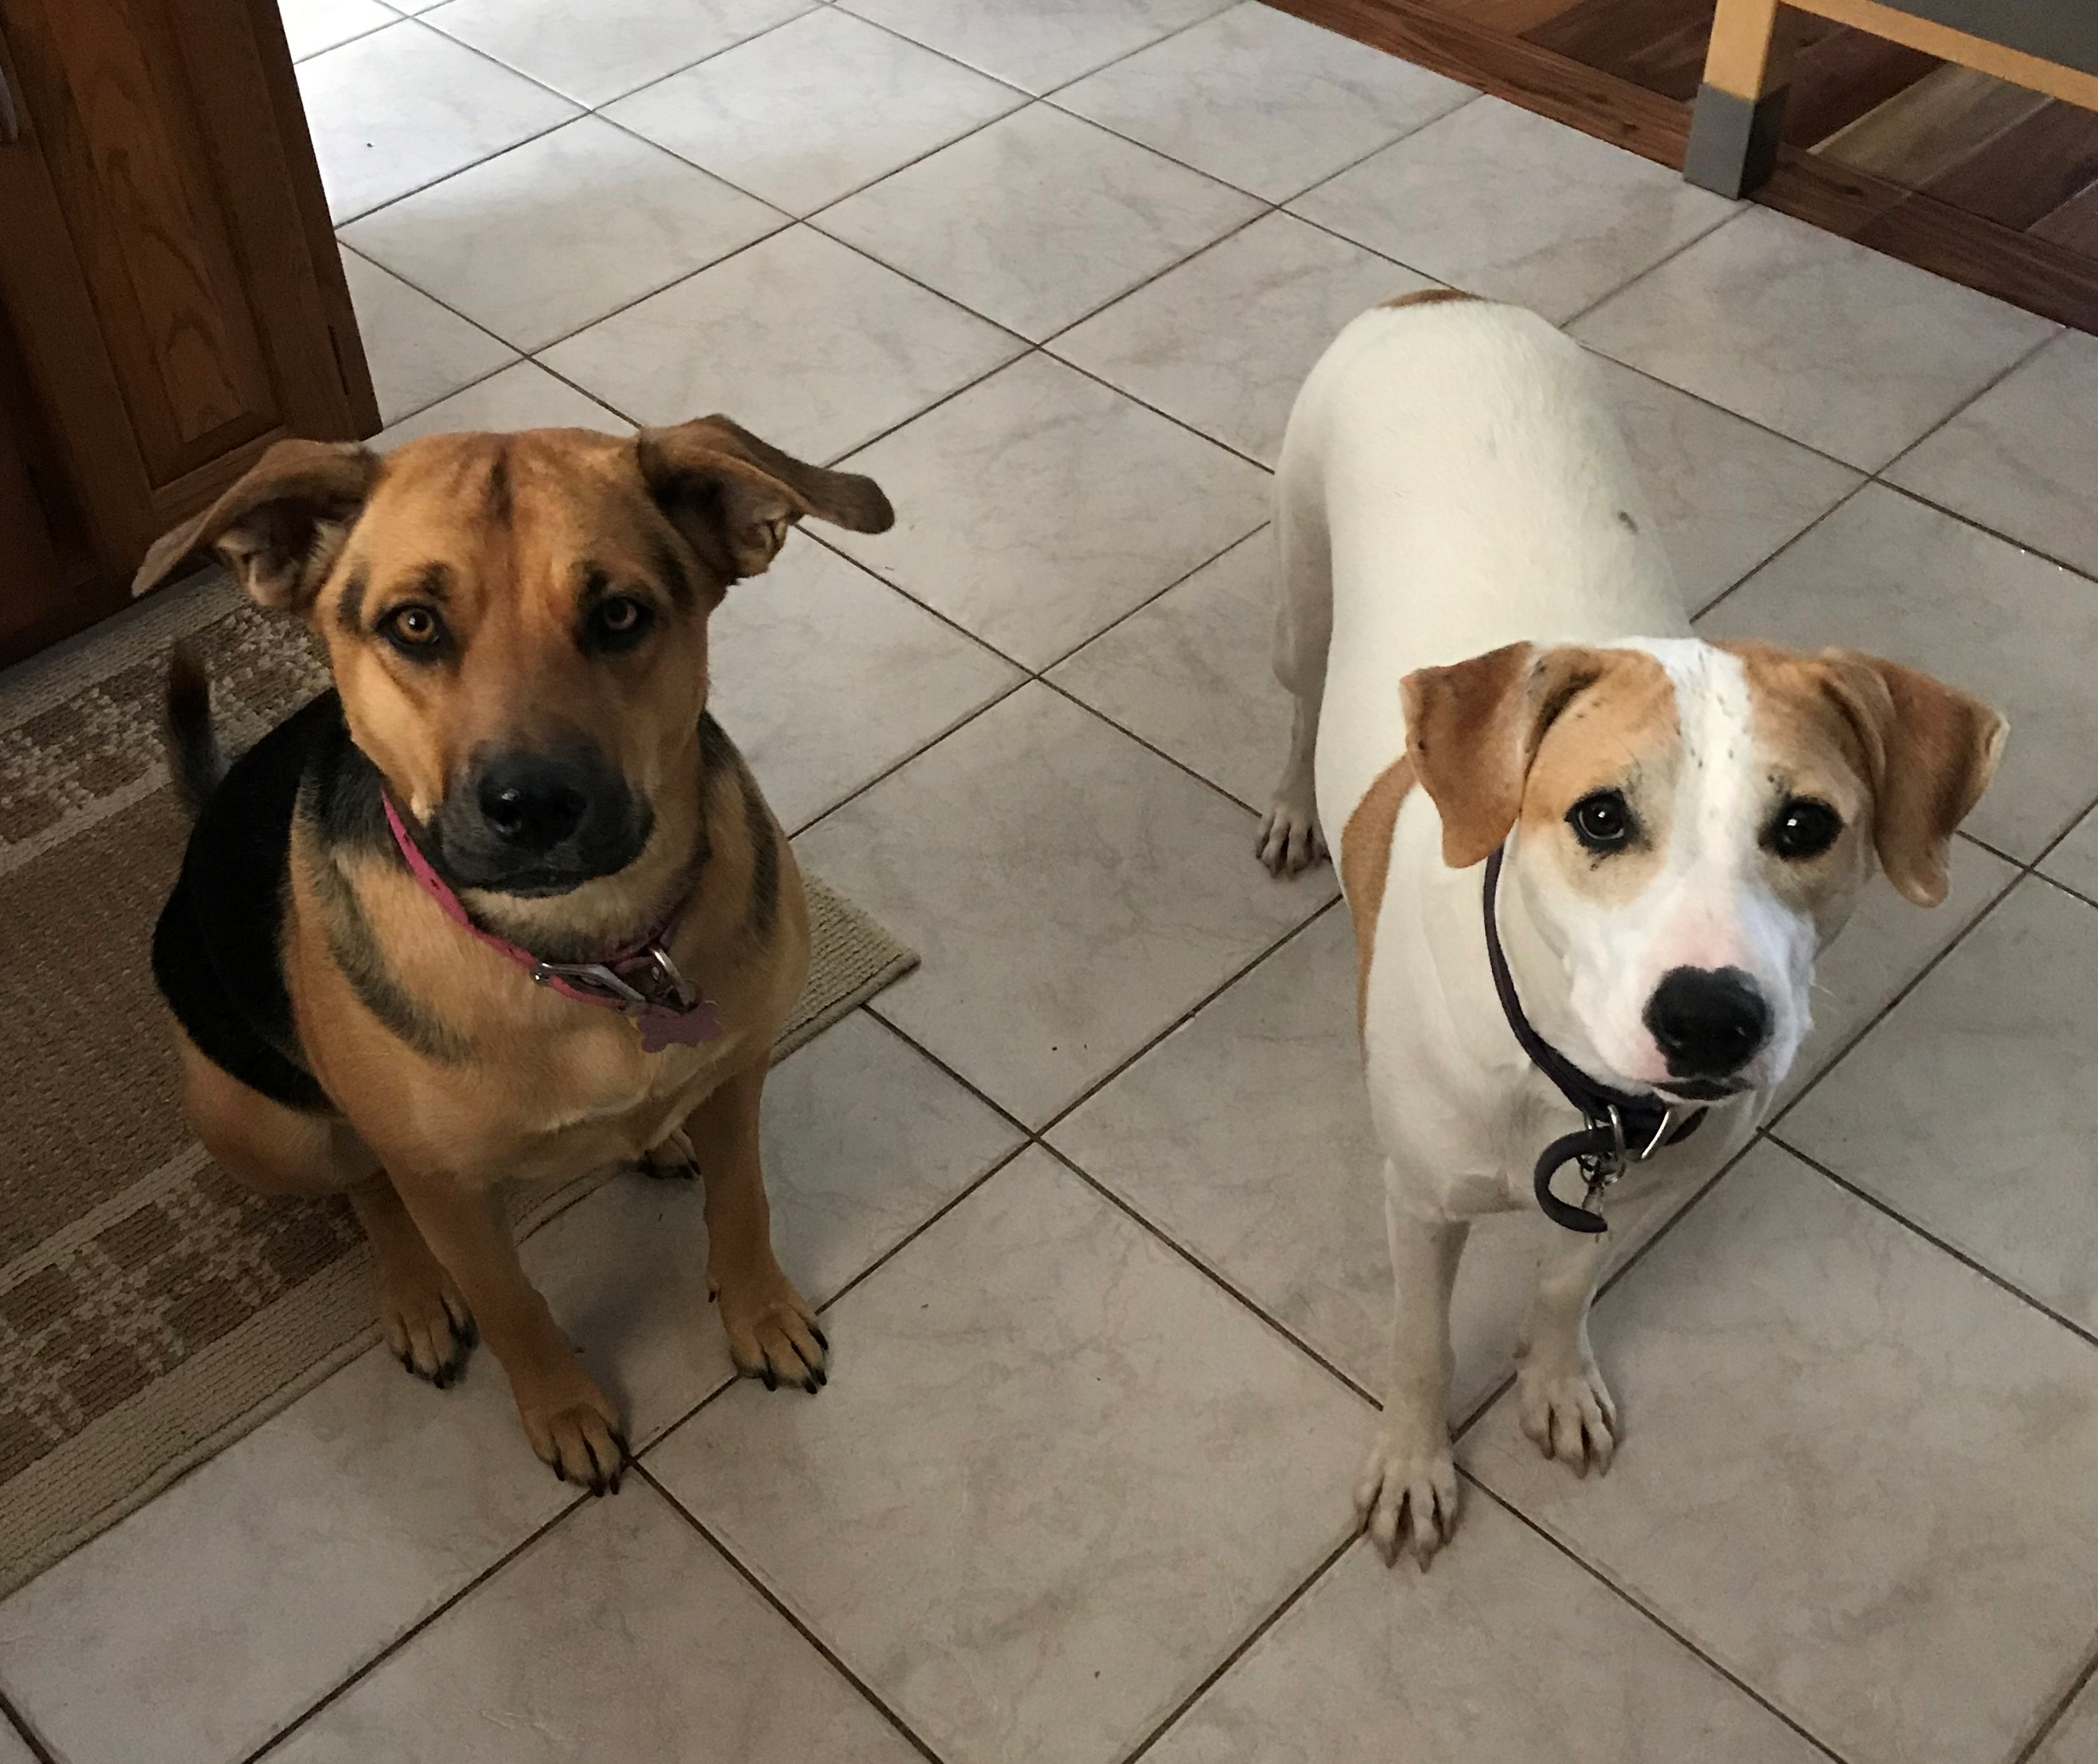 Being two rescue dogs, Daisy and Sophie act like sisters who love to chase squirrels and play ball together. While each one have their own unique personality, they remain very close to each other.